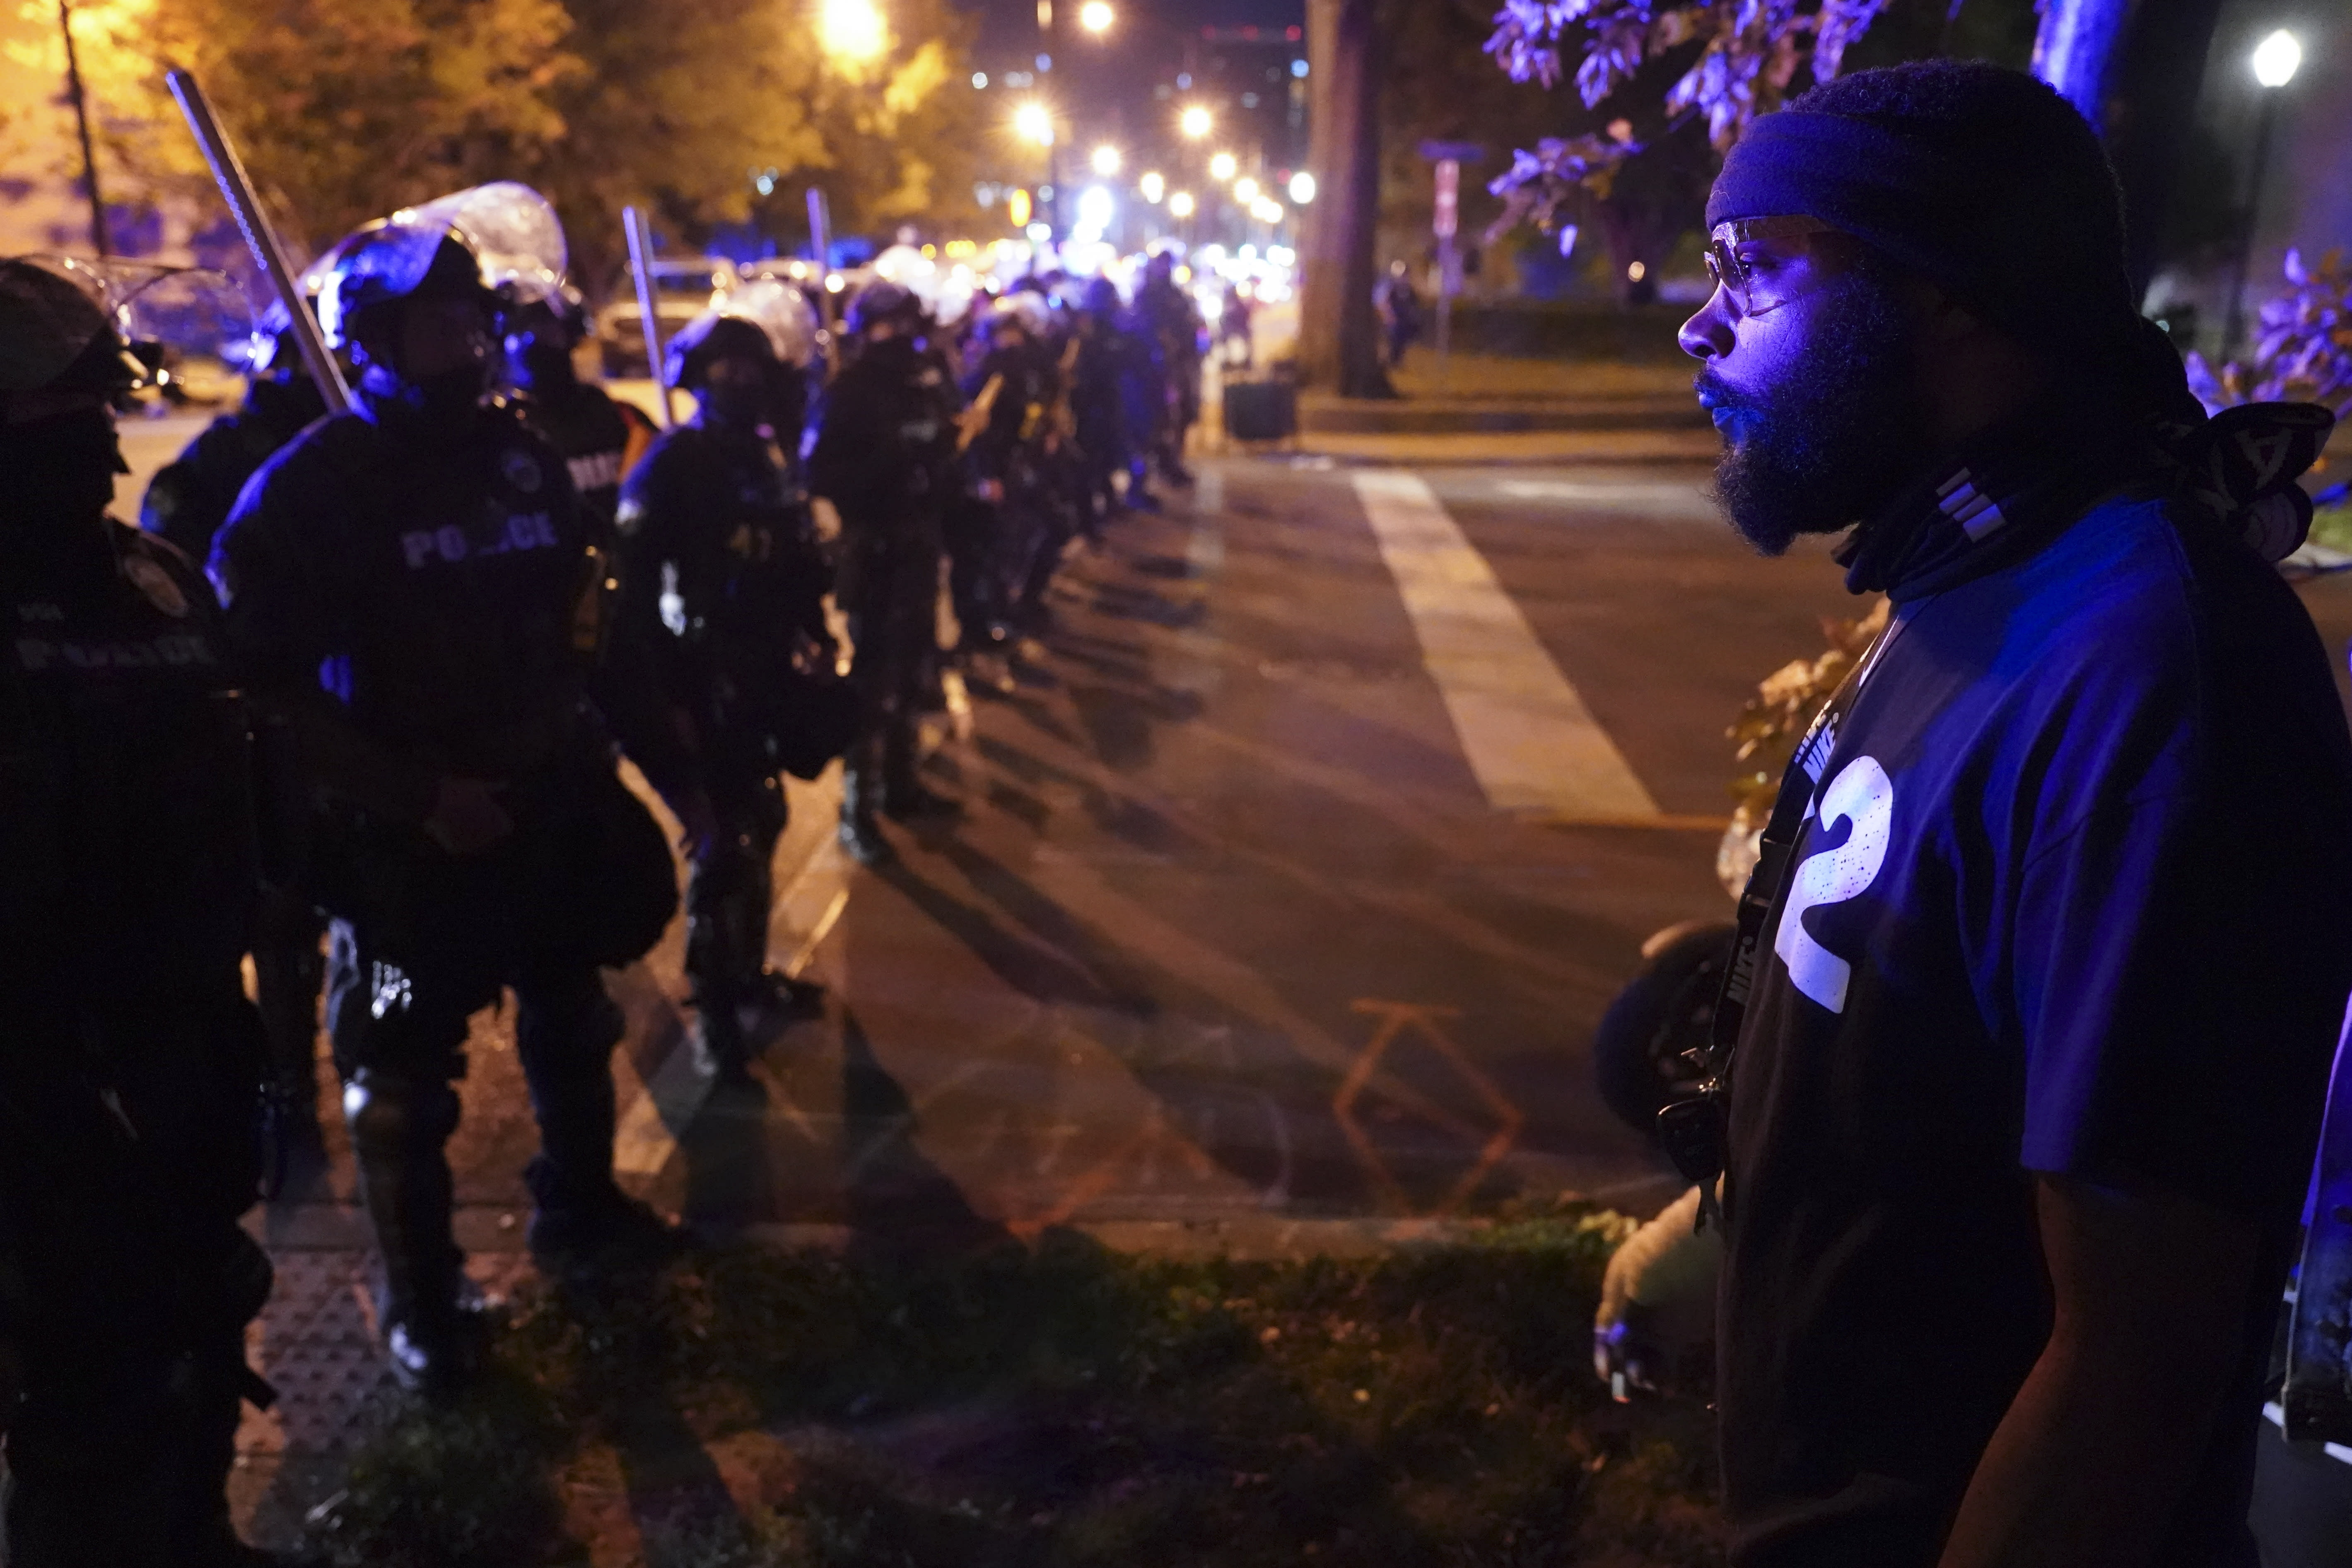 Police speak with protesters at the First Unitarian church, Thursday, Sept. 24, 2020, in Louisville, Ky. Authorities pleaded for calm while activists vowed to fight on Thursday in Kentucky's largest city, where a gunman wounded two police officers during anguished protests following the decision not to charge officers for killing Breonna Taylor. (AP Photo/John Minchillo)